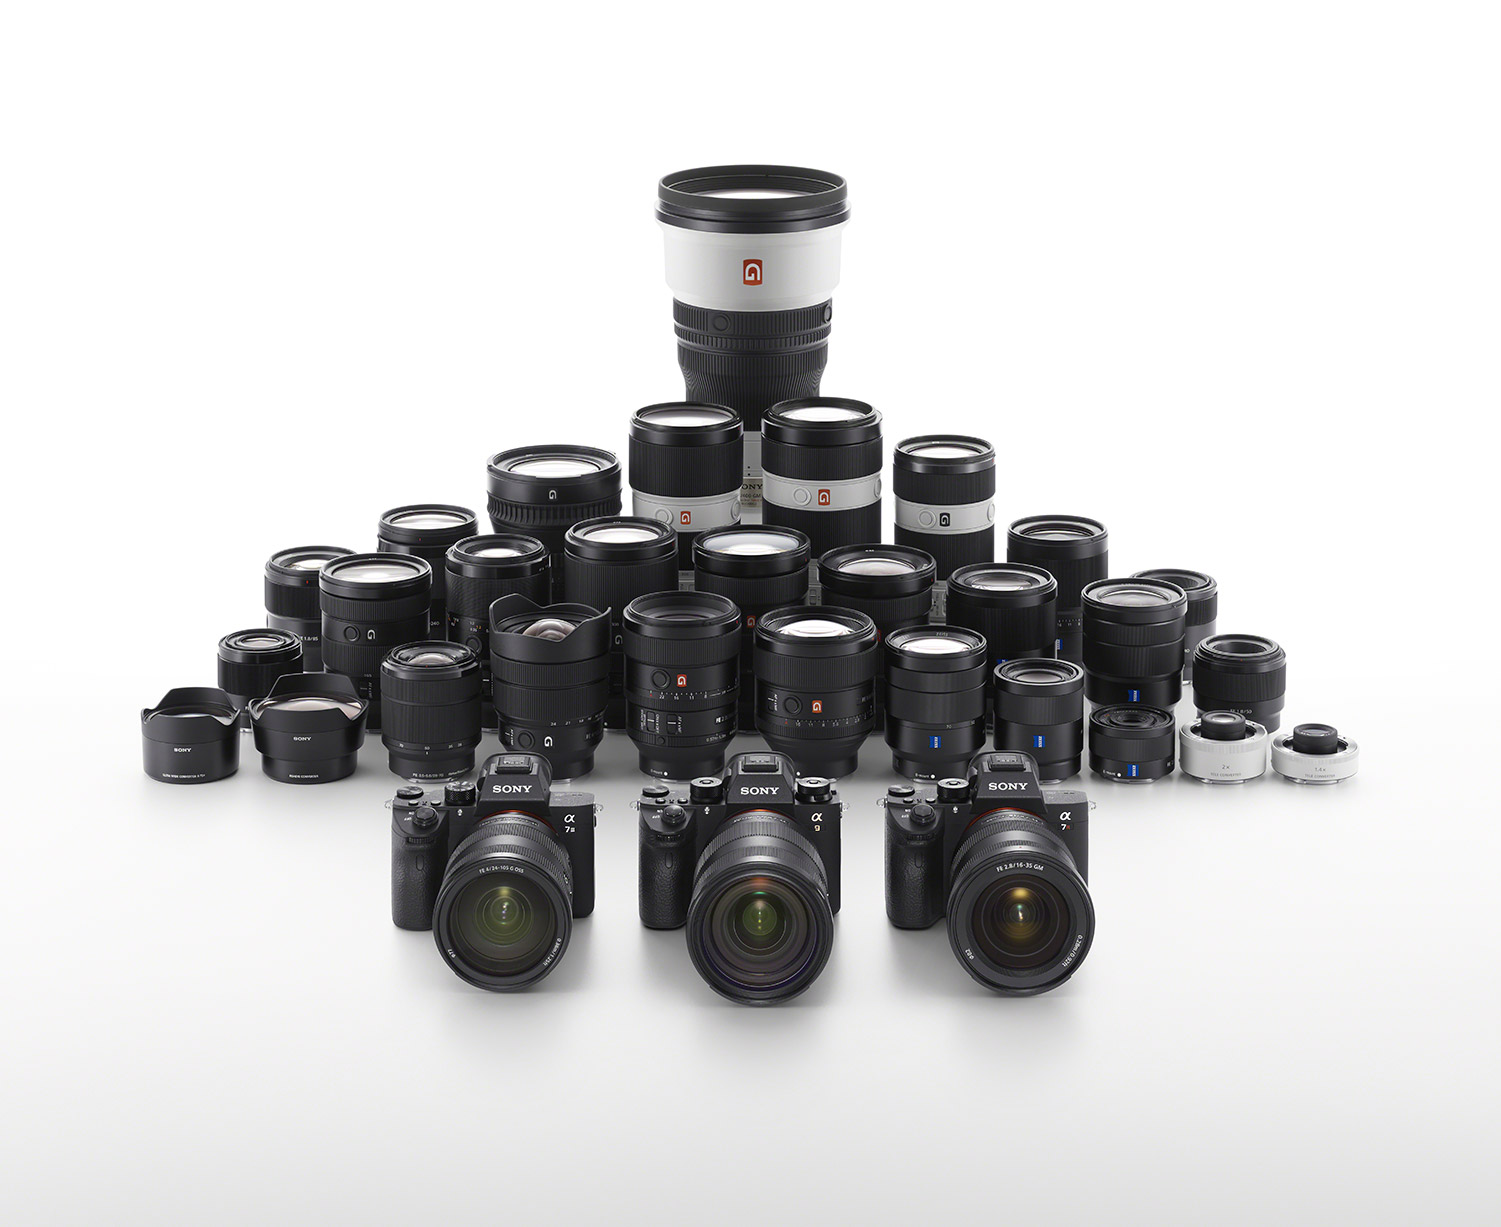 Sony camera and lens lineup.